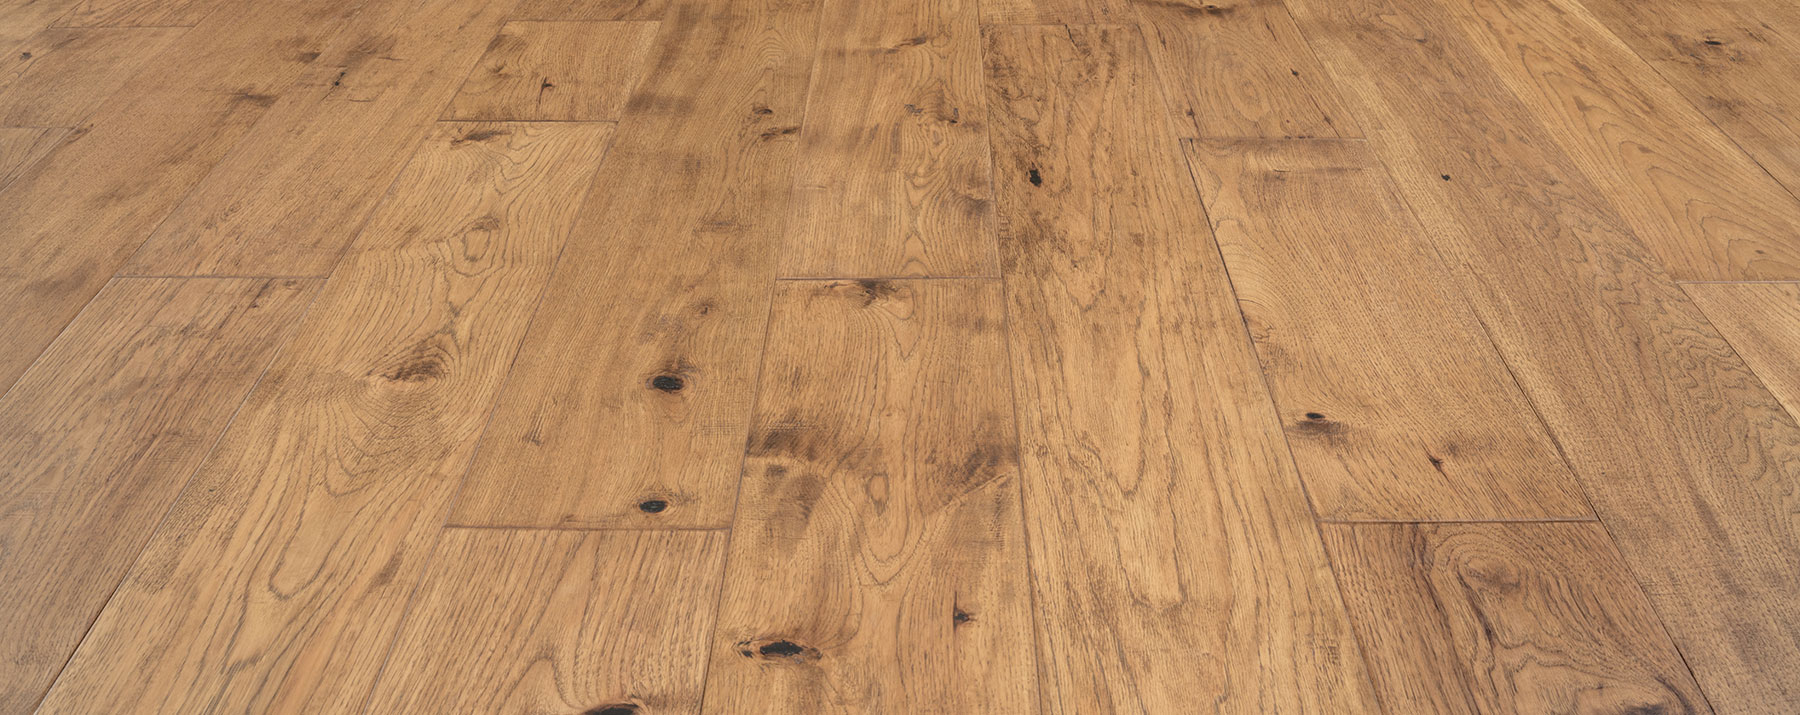 Greenwood Flooring International Springhouse Original Hickory Wood Flooring